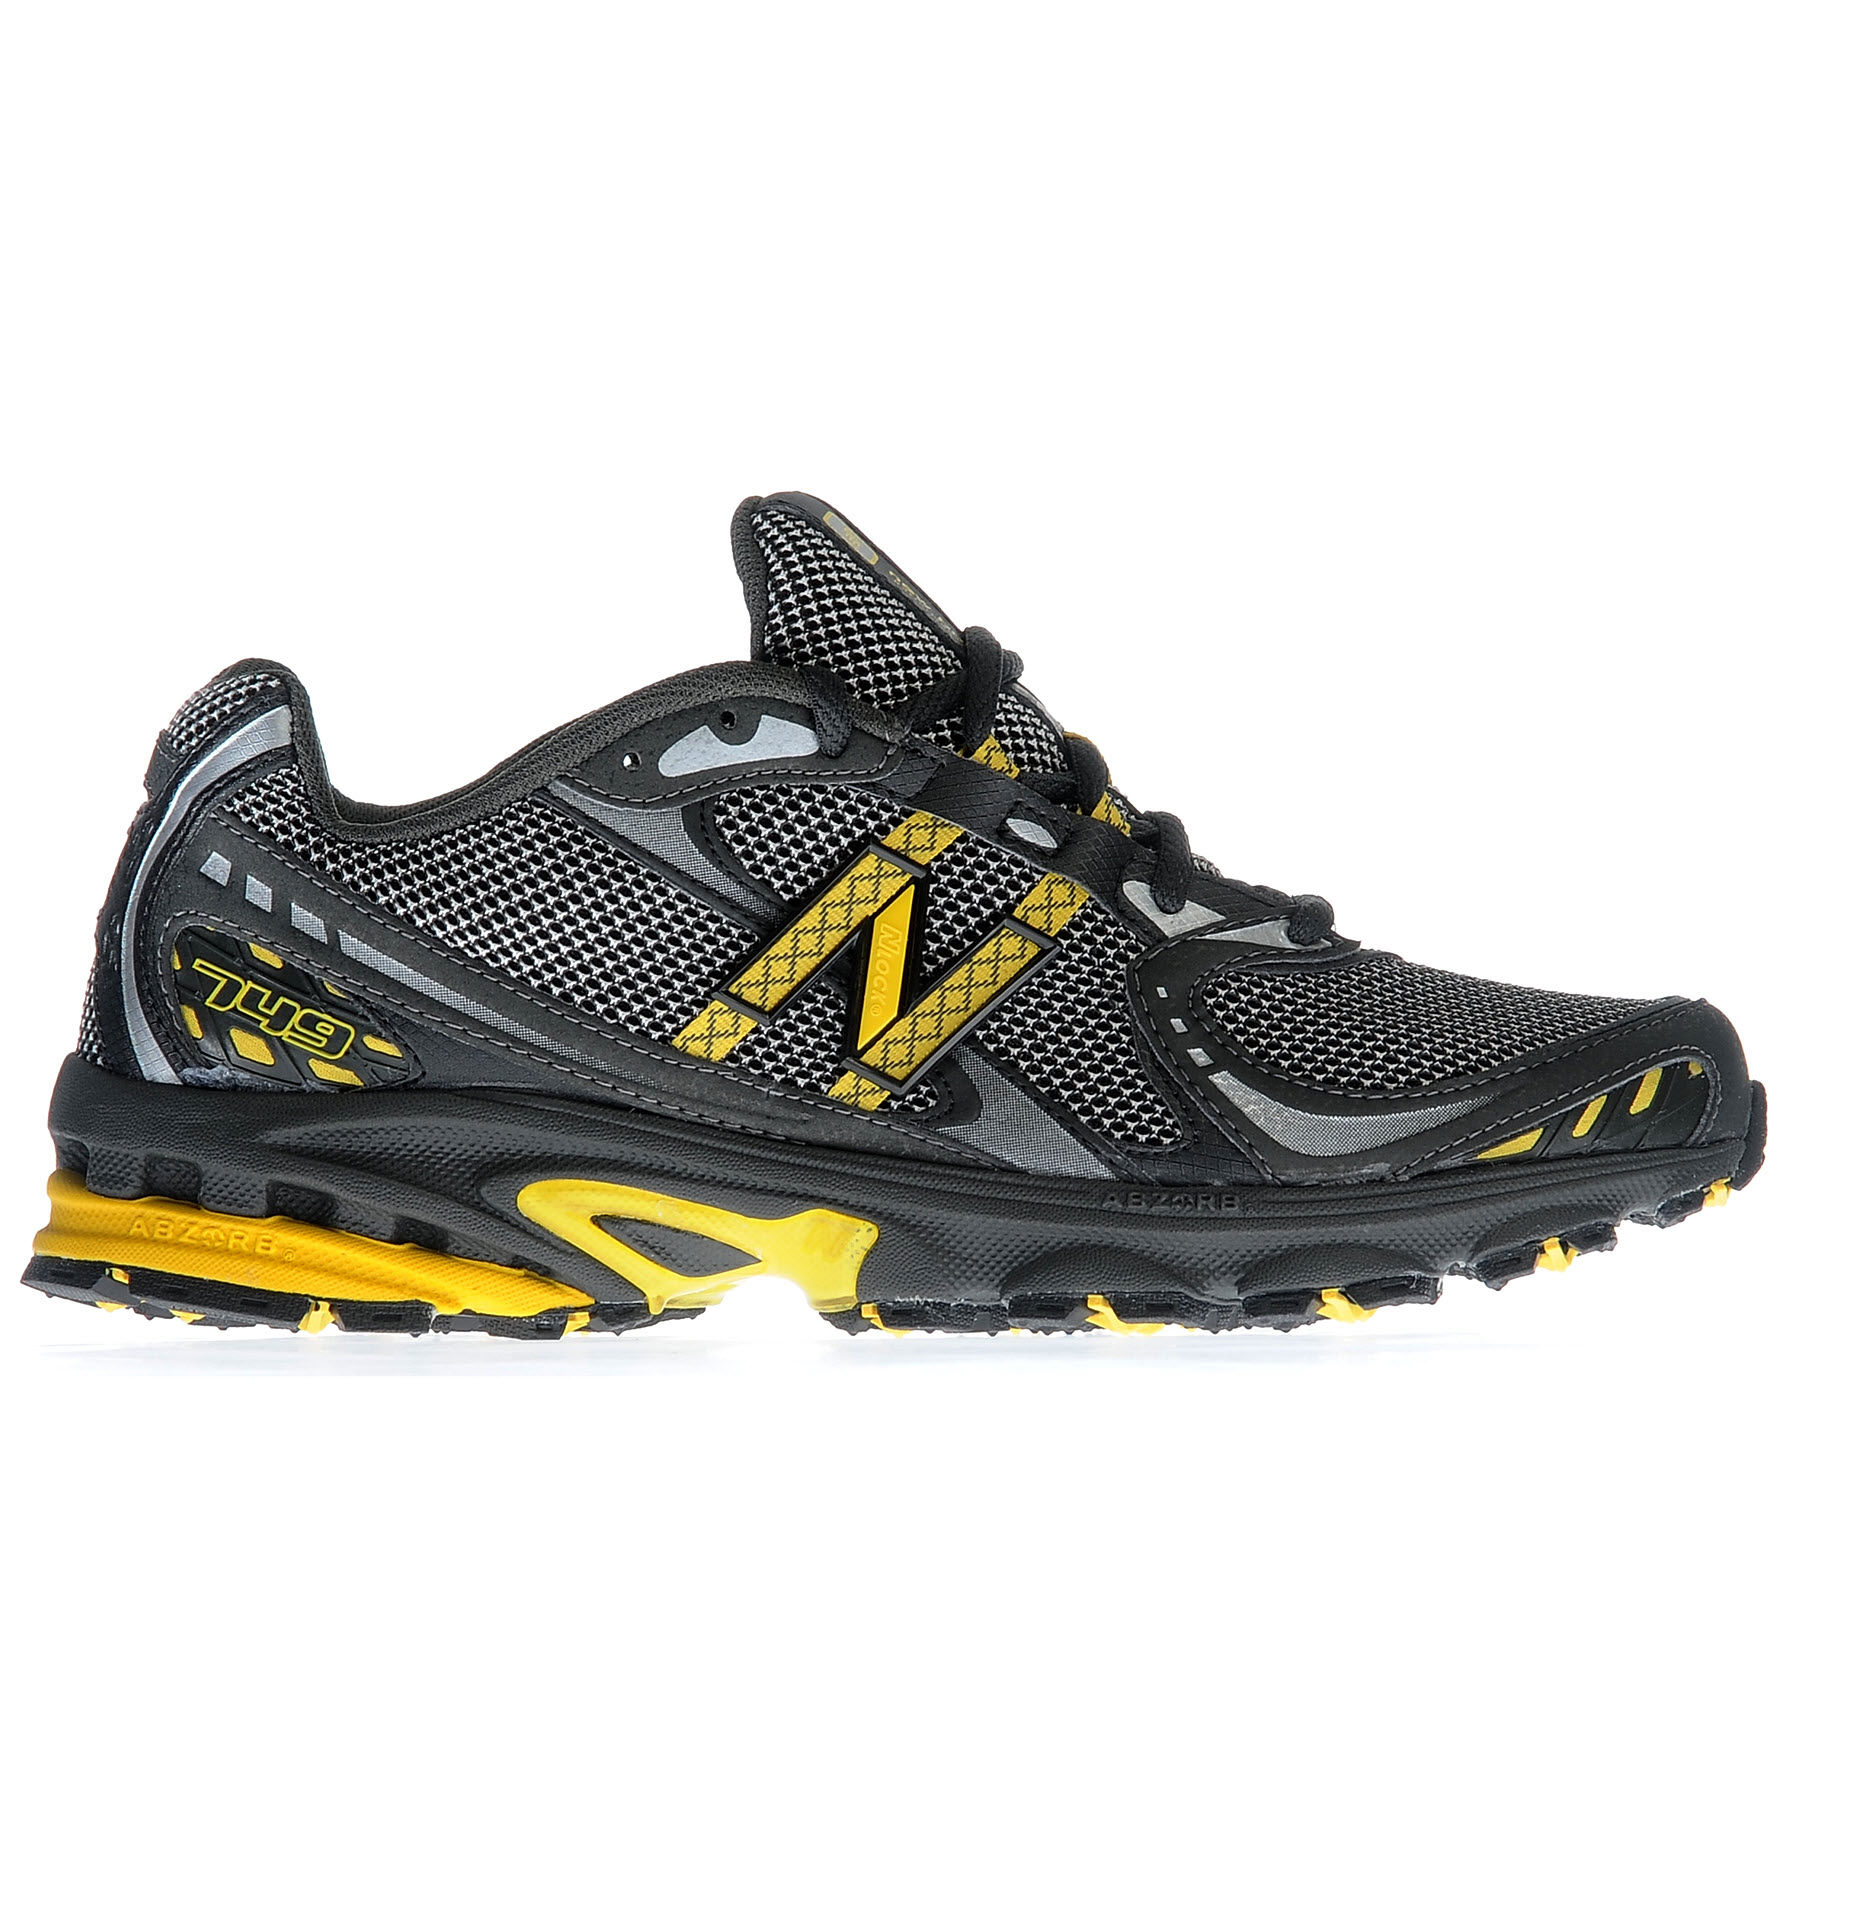 zoom New Balance MR749 Trail Shoes - AW12